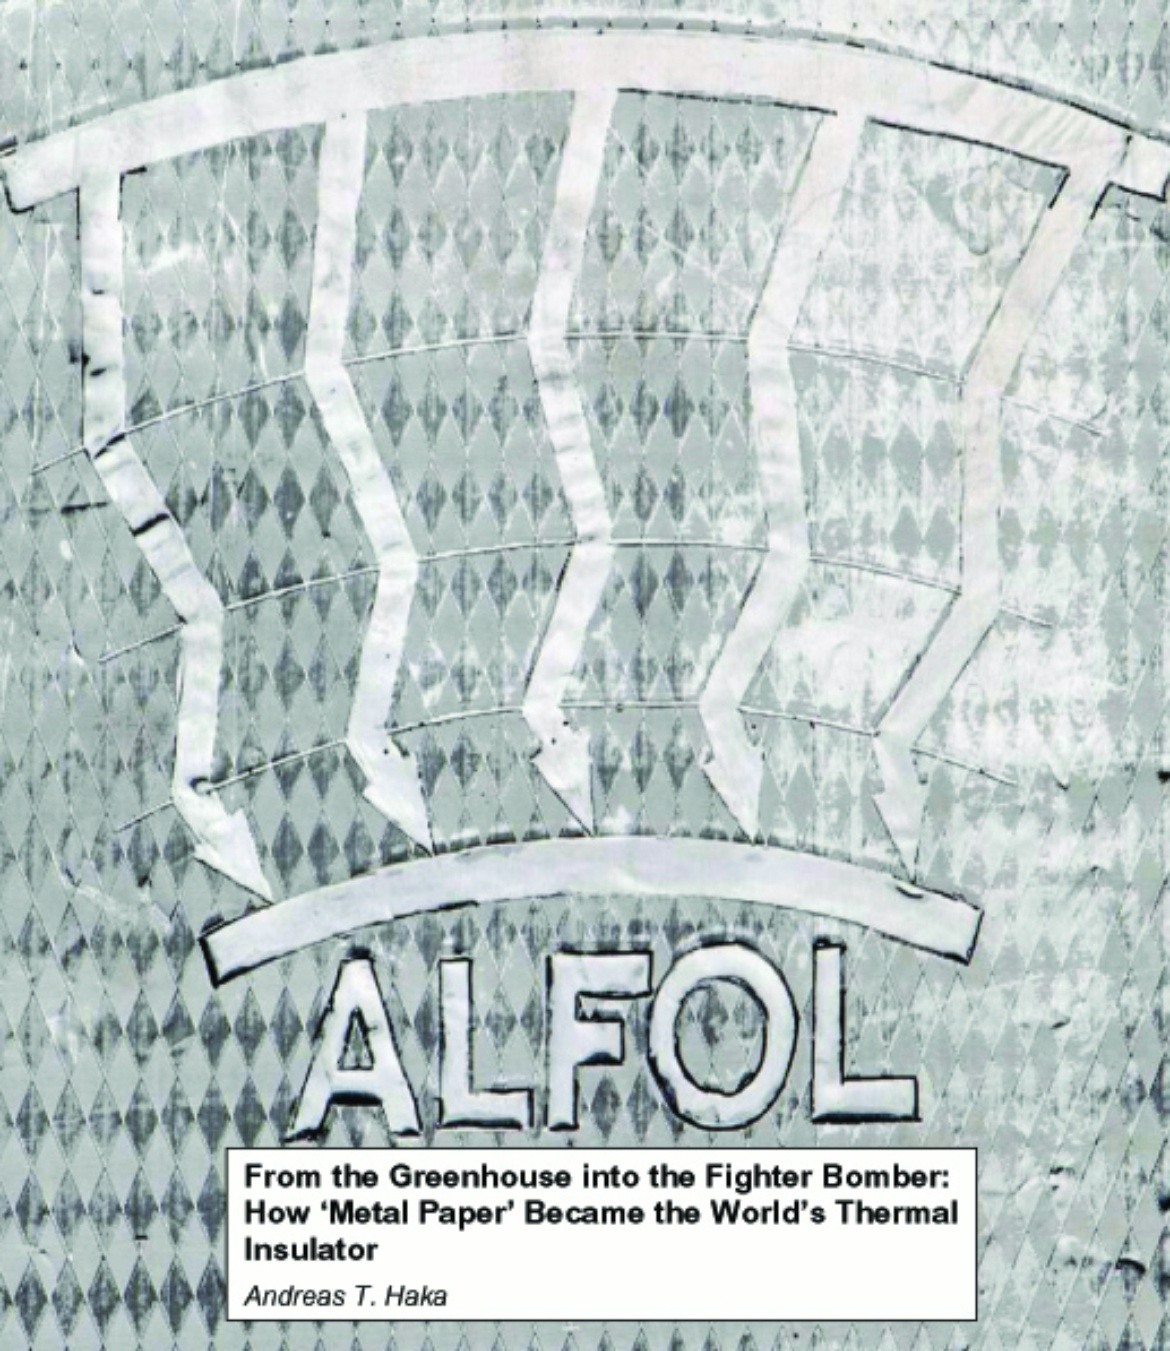 From the Greenhouse into the Fighter Bomber. How 'Metal Paper' Became the World's Thermal Insulator.